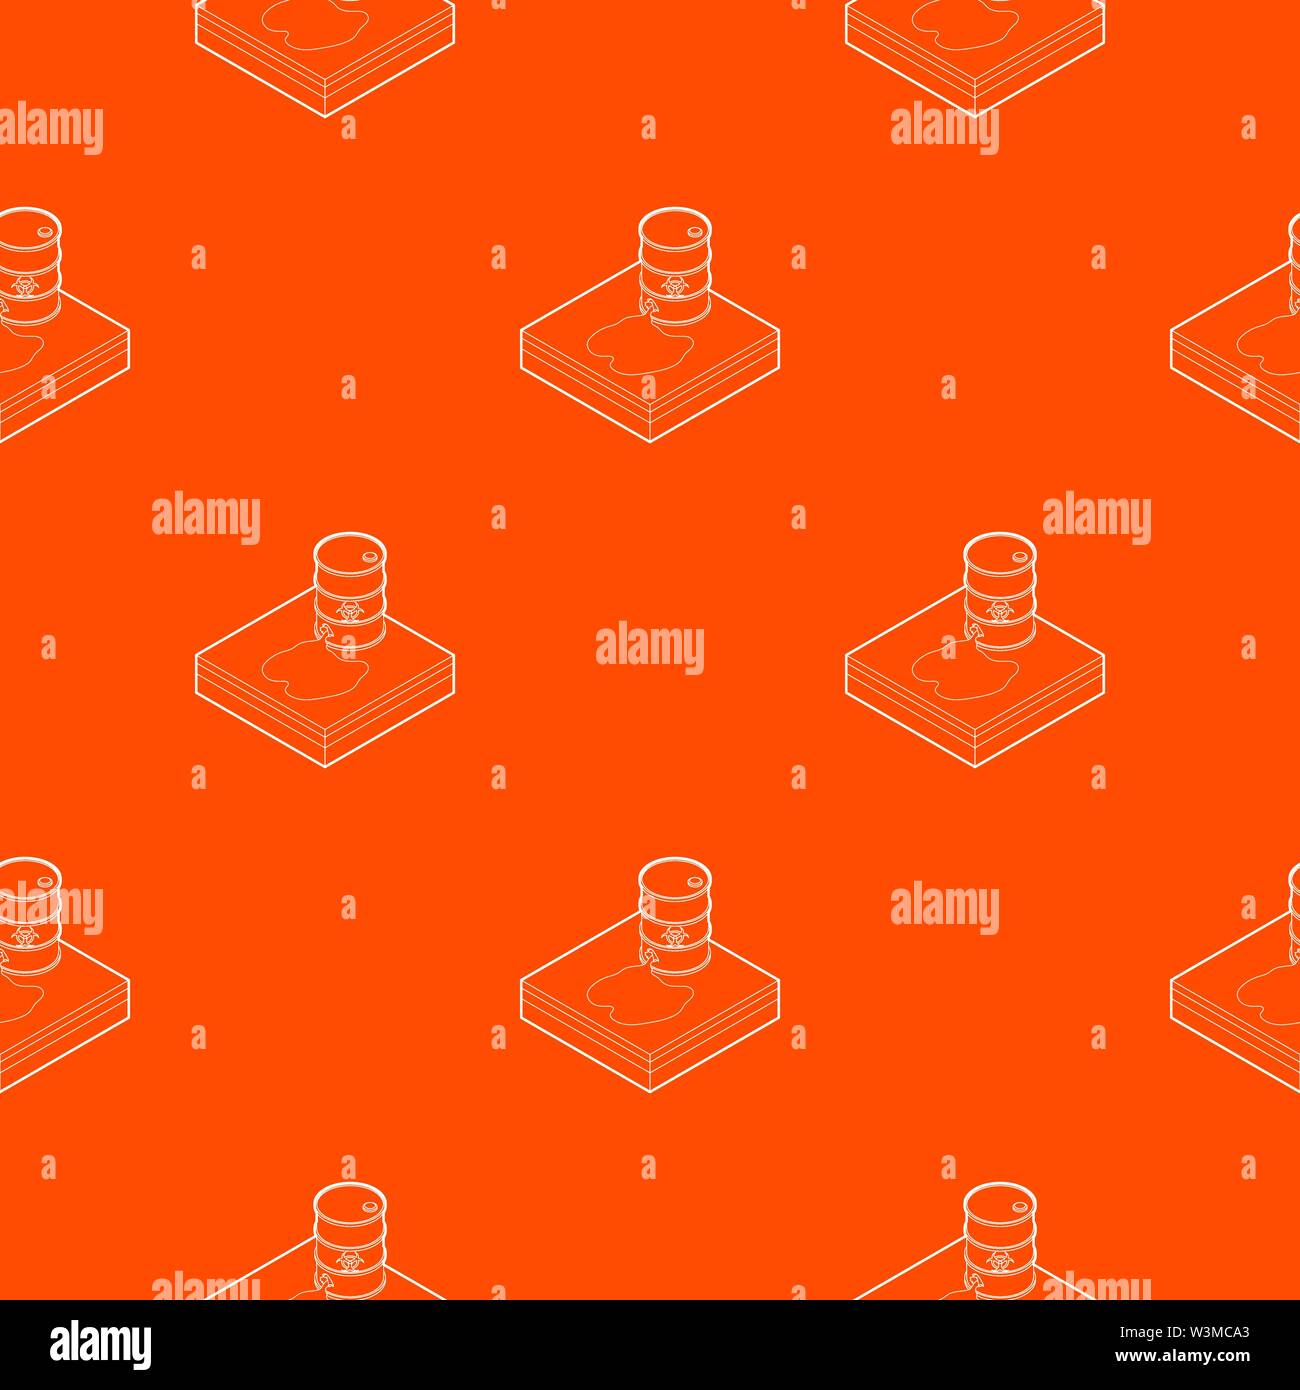 Toxic waste spilling from barrel pattern vector orange - Stock Image